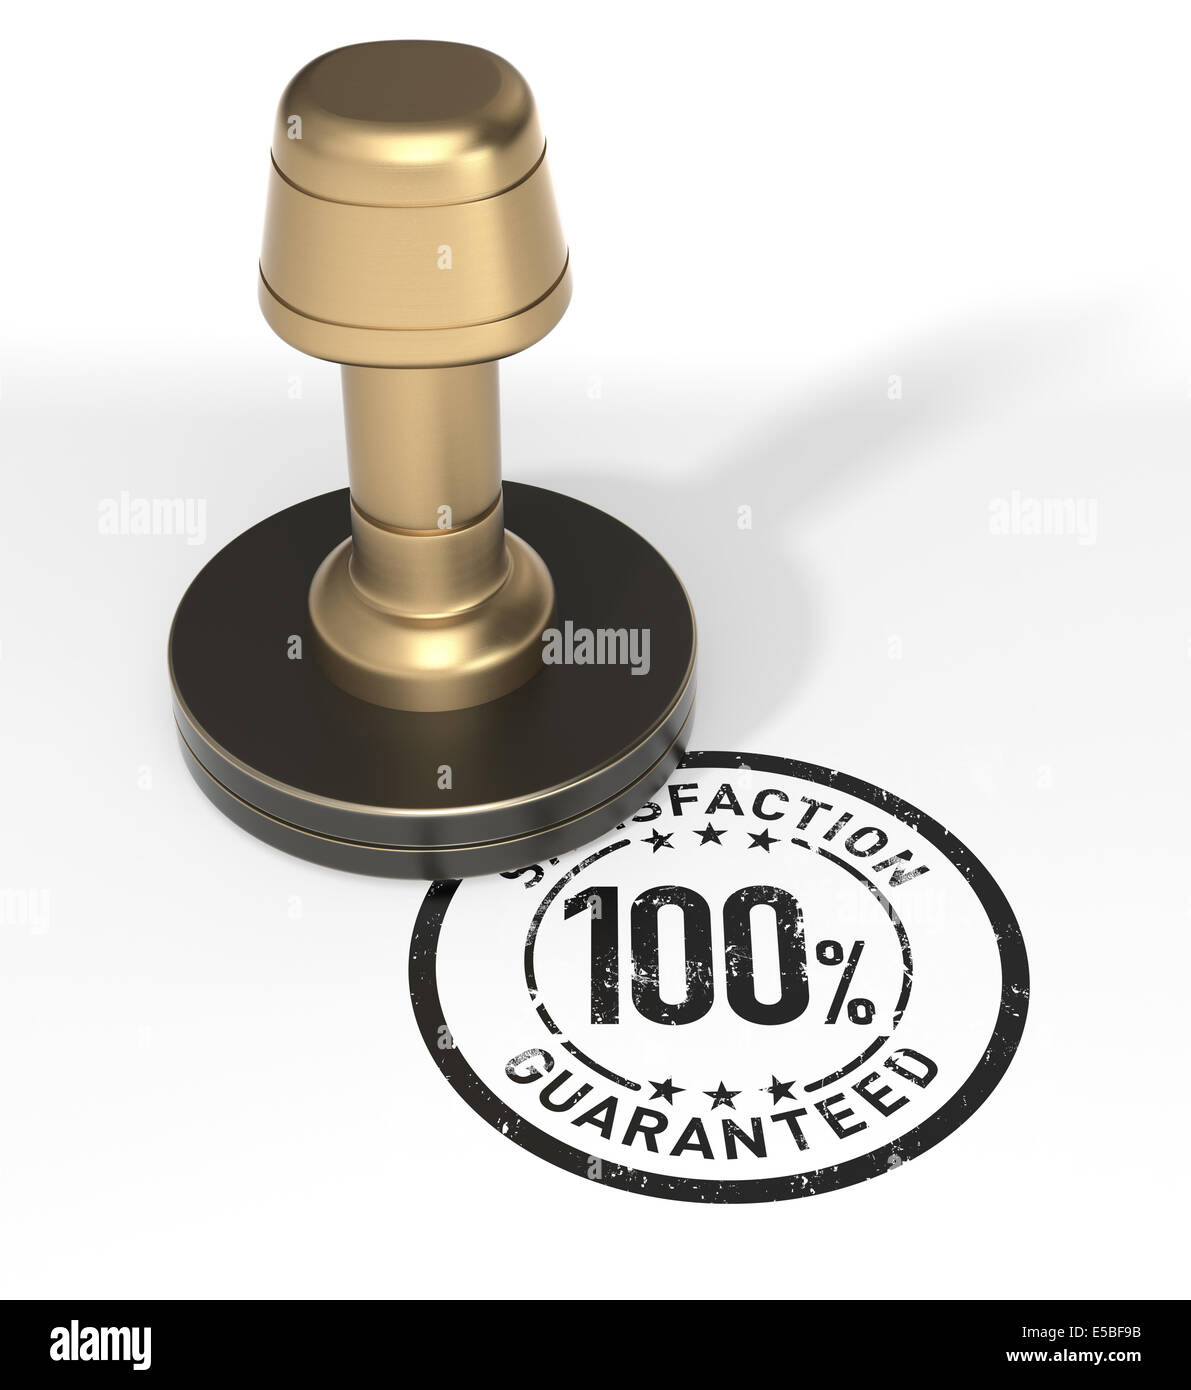 Satisfaction 100% Guaranteed Rubber Stamp - Stock Image